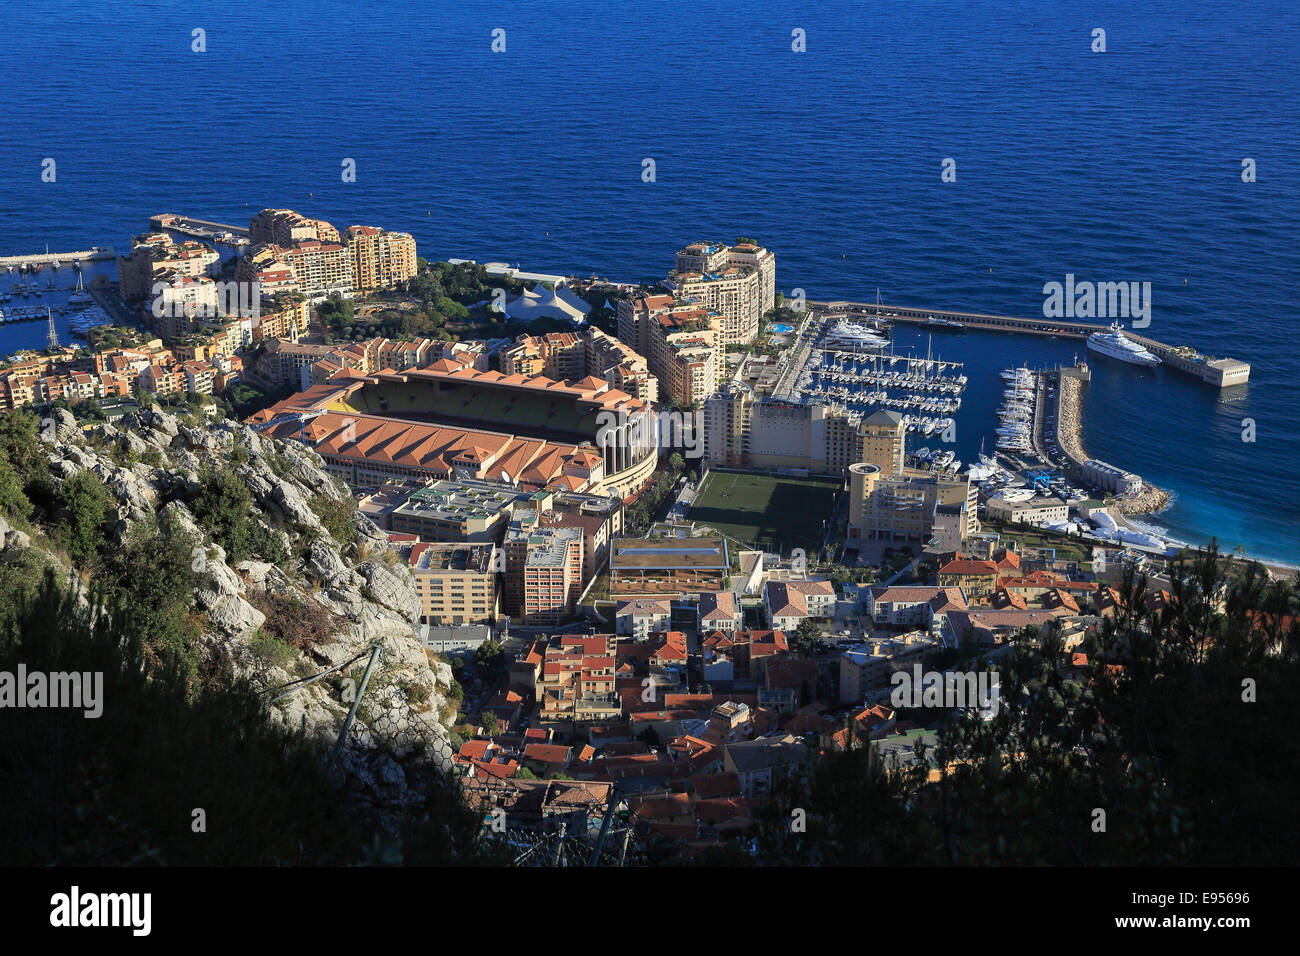 Fontvieille, district built on reclaimed land, with the football stadium and the Port of Cap d'Ail, seen from underneath Stock Photo